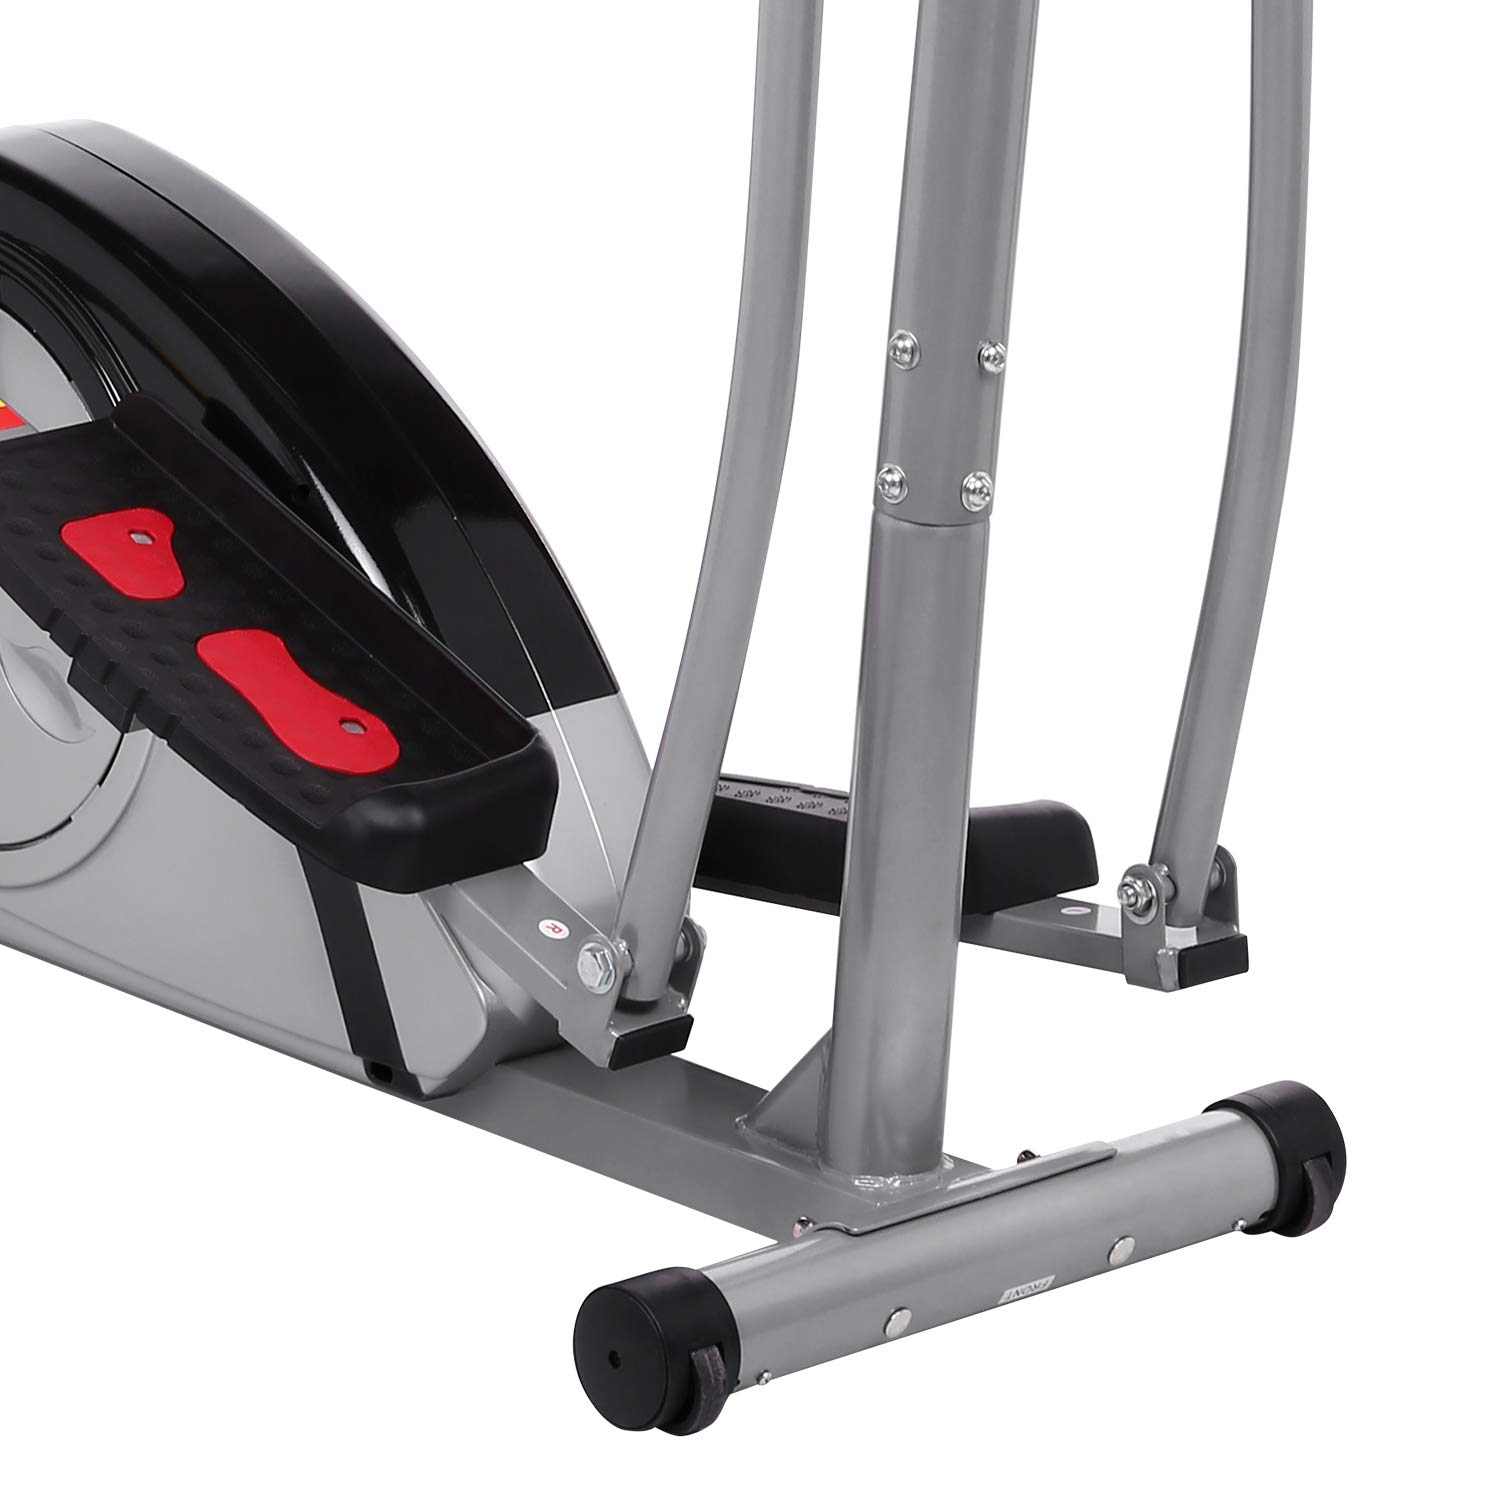 Fast 88 Portable Elliptical Machine Fitness Workout Cardio Training Machine, Magnetic Control Mute Elliptical Trainer with LCD Monitor,Top Levels Elliptical Machine Trainer (Grey) by Fast 88 (Image #6)